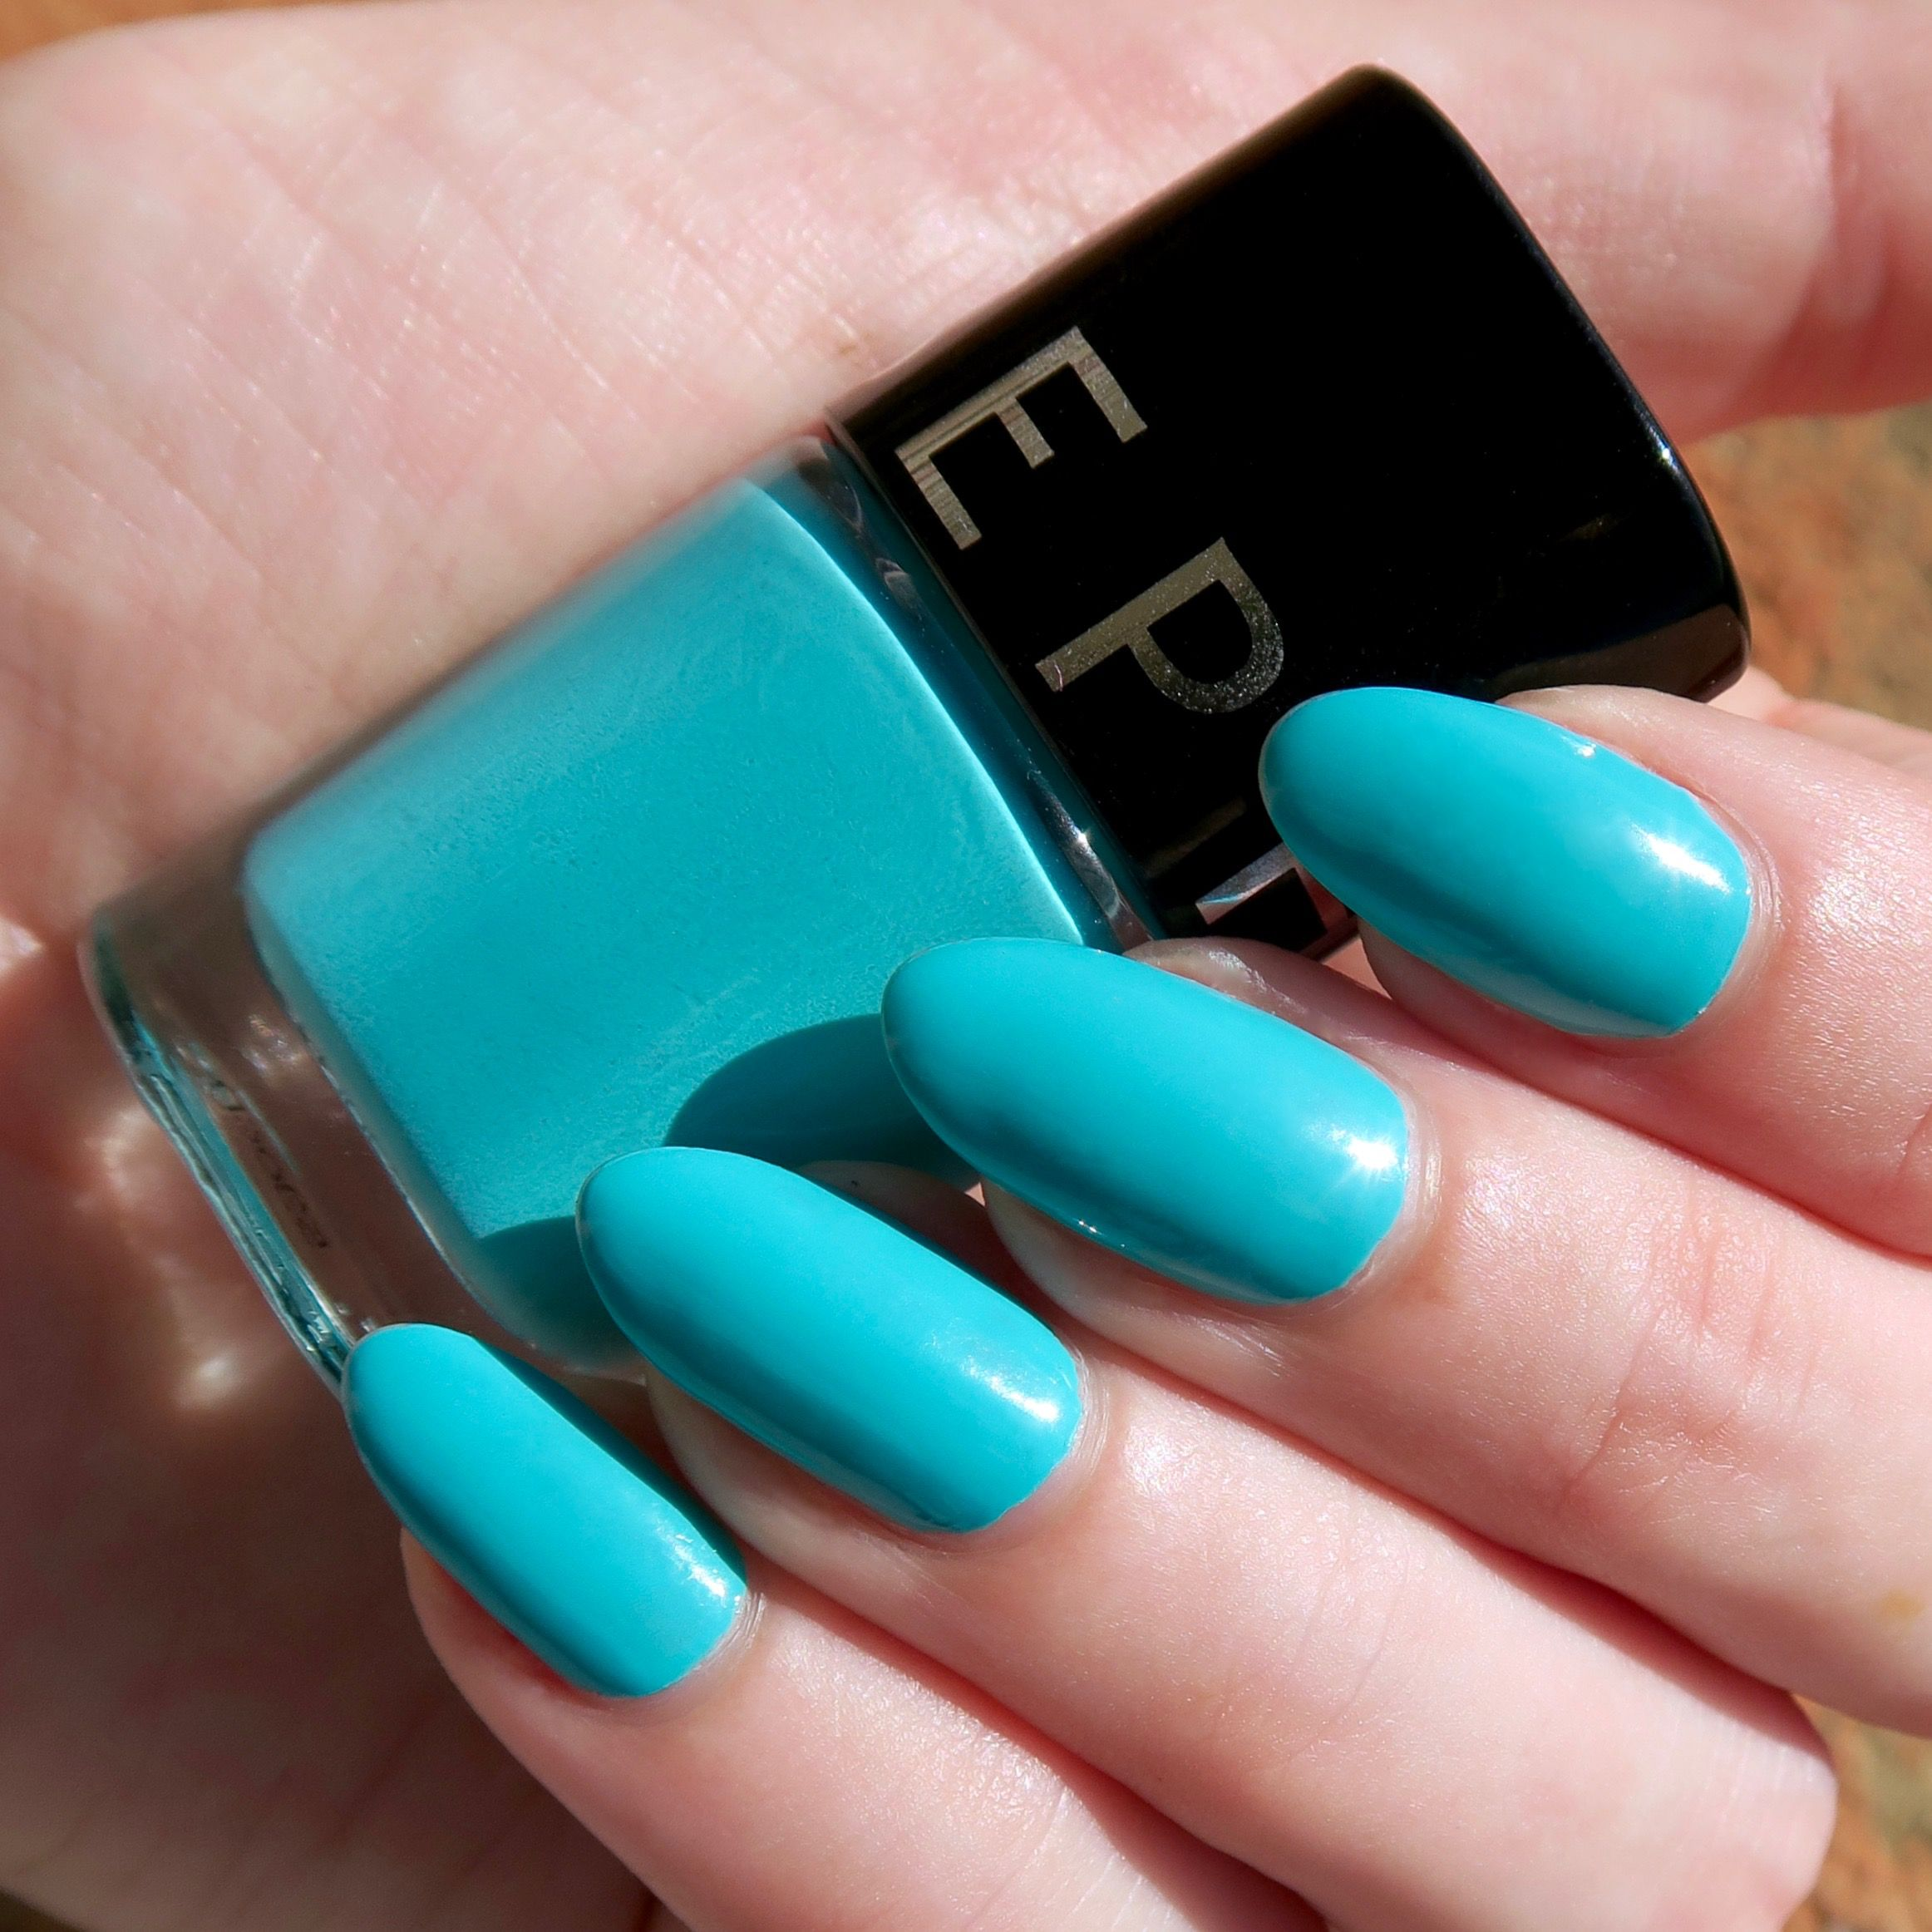 Sephora \'Bikini Party\' - Are Sephora Own Polishes Being Discontinued ...